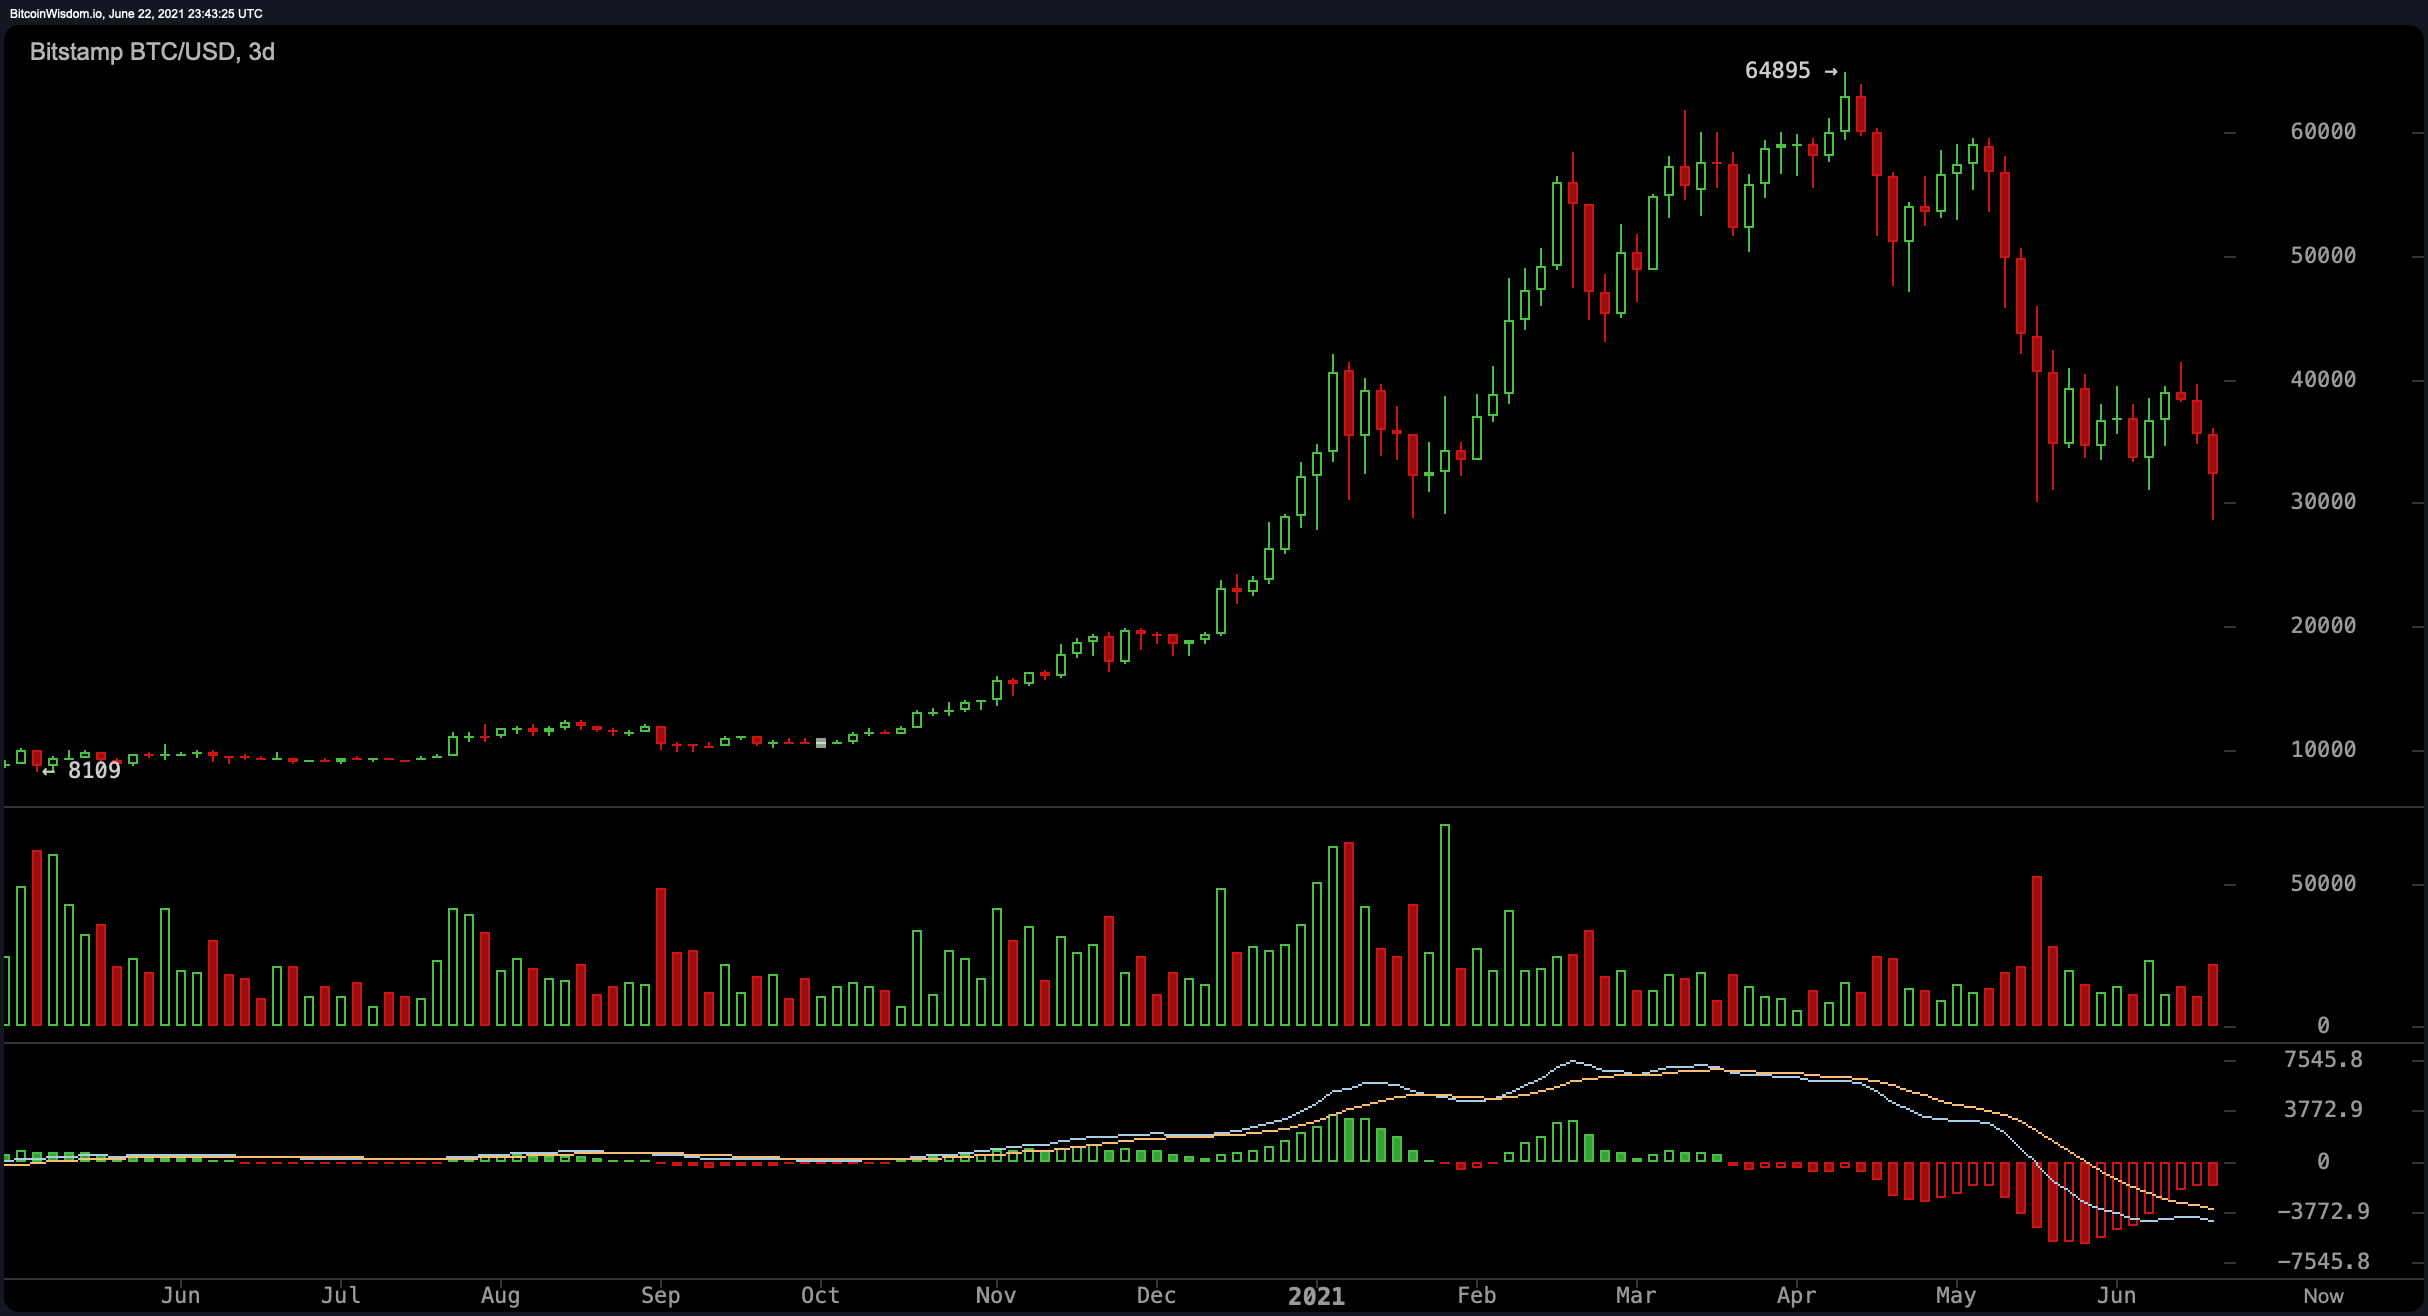 While Bitcoin Hits New Lows Gold Bug Peter Schiff Blasts the Leading Crypto and Supporters